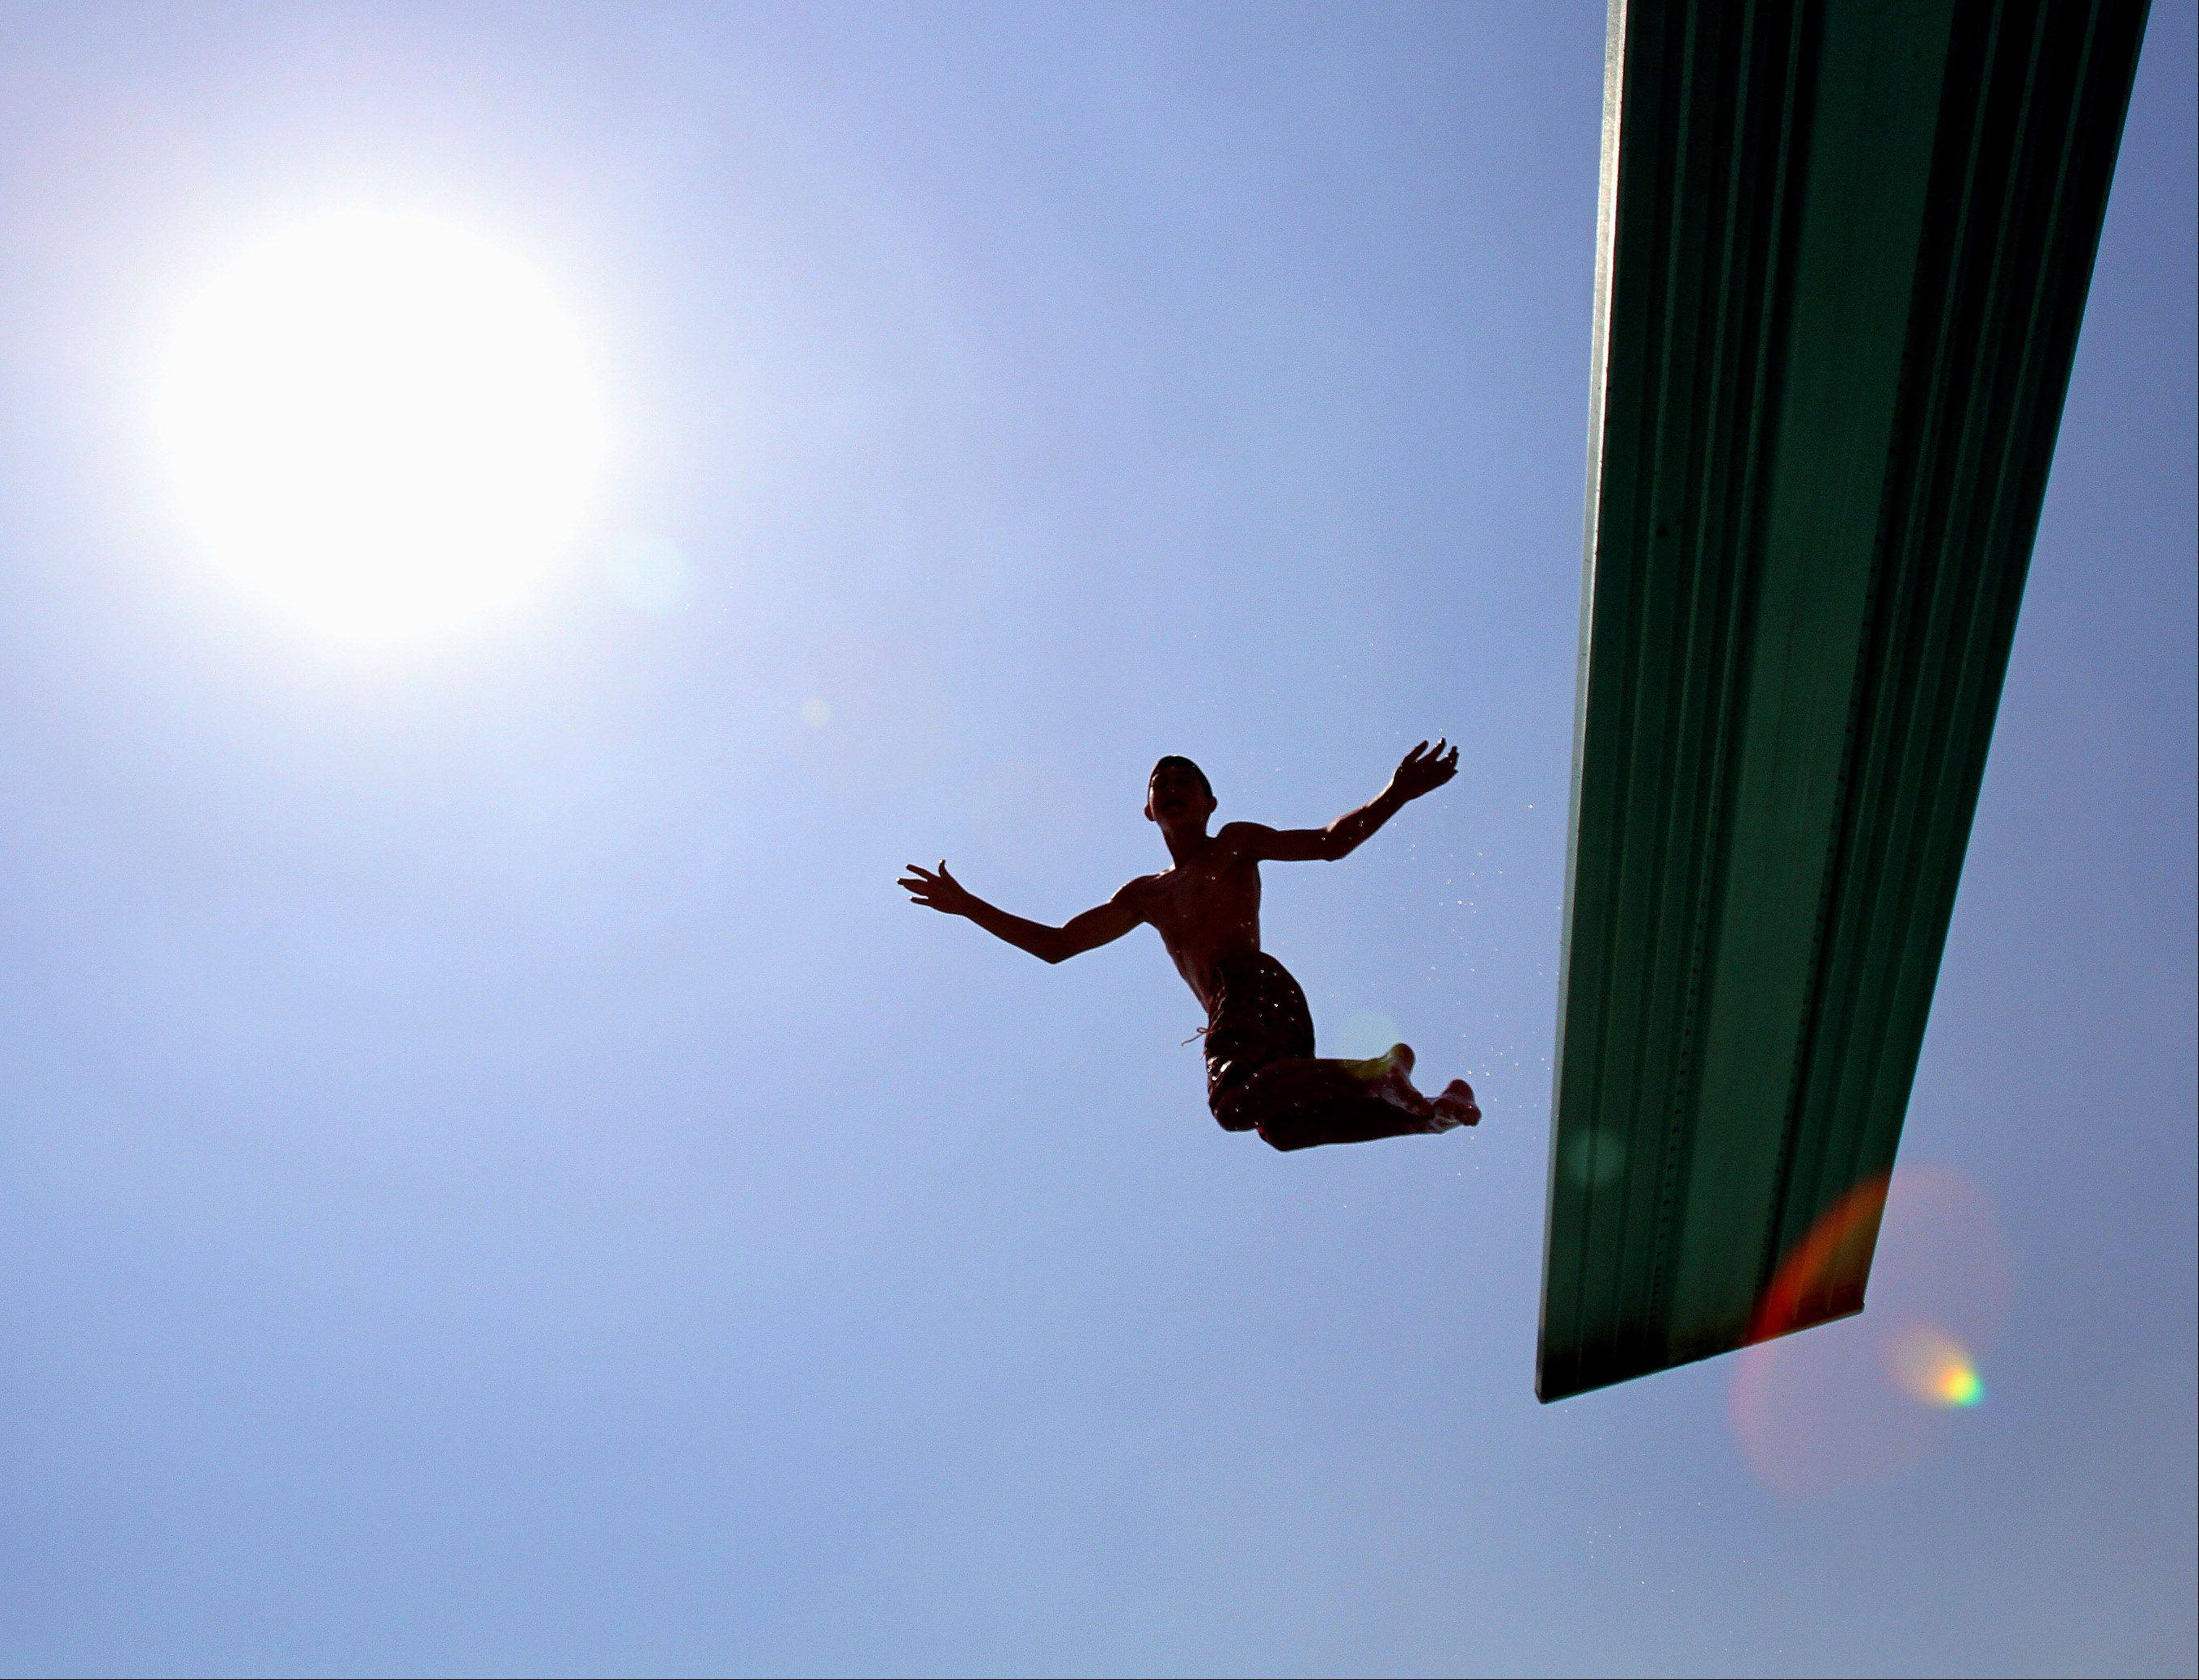 Jake Wenz, 12 of Naperville, jumps off the high board at Centennial Beach in Naperville on Friday.